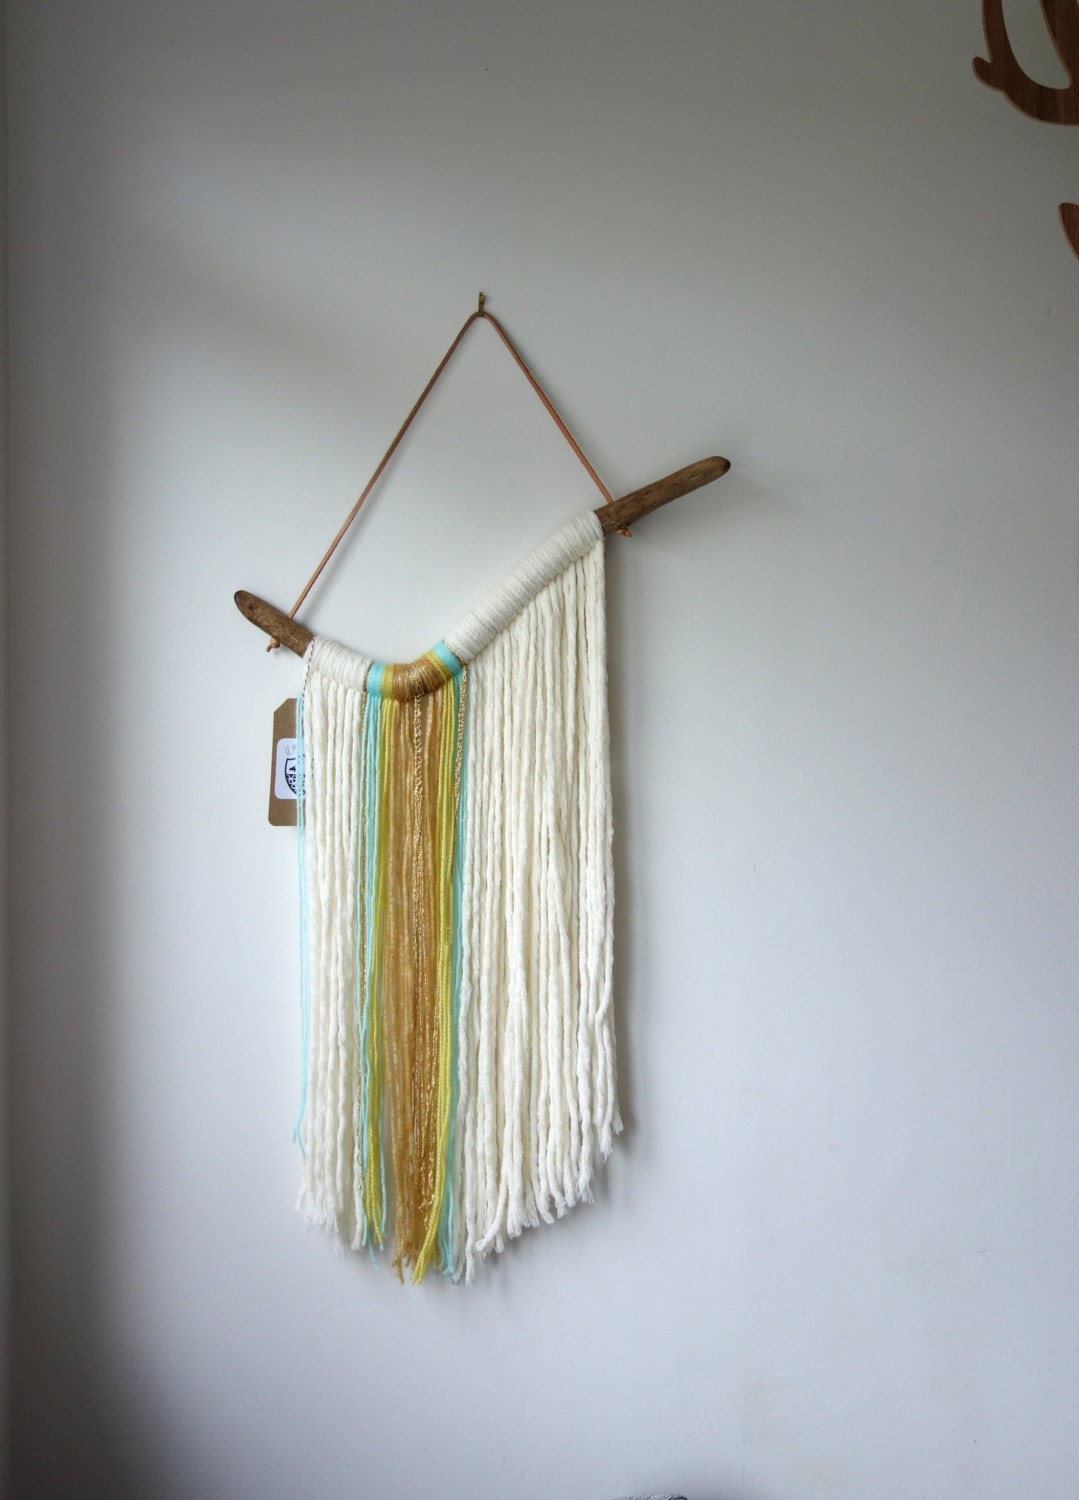 Driftwood Yarn Wall Hanging Waterfall Textile